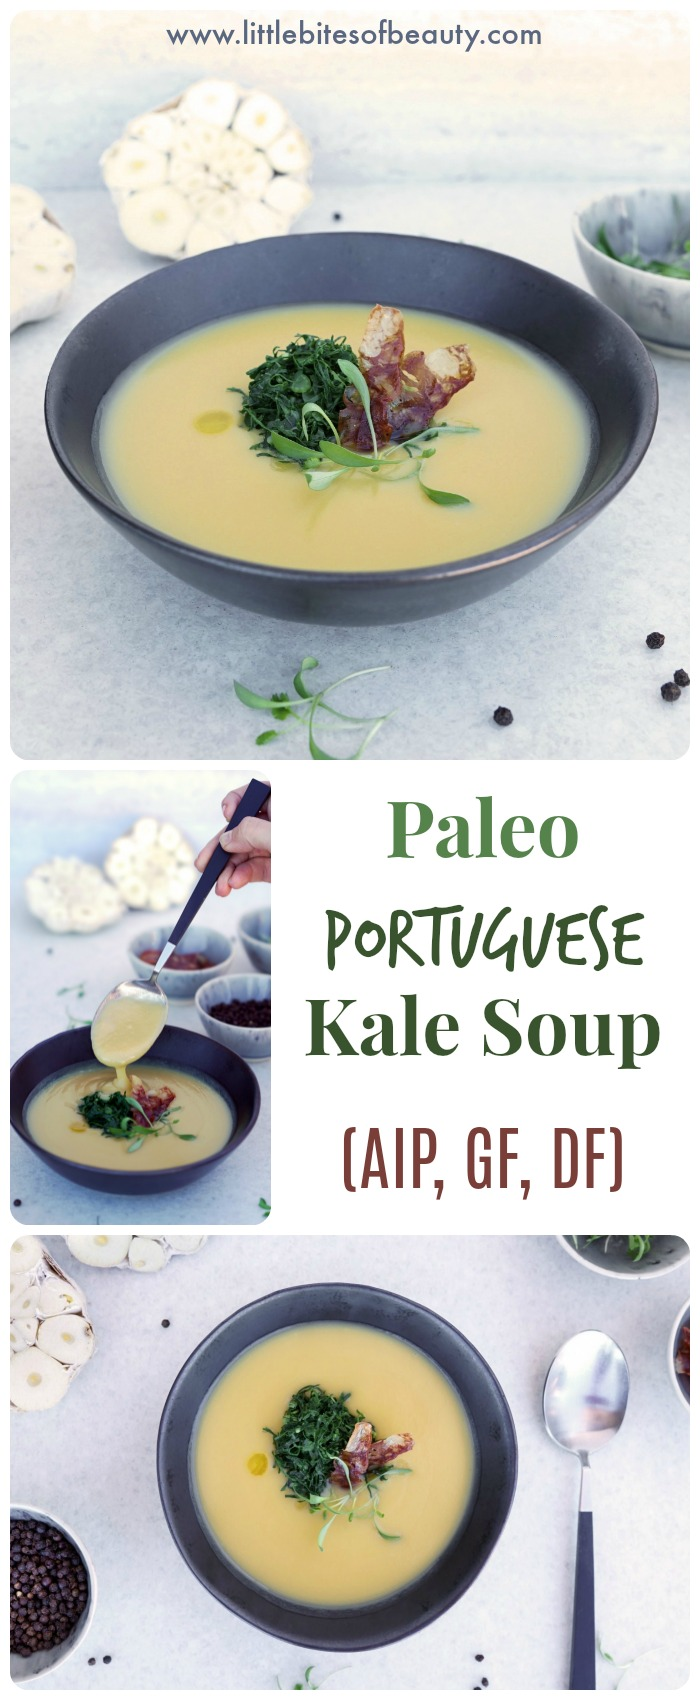 Paleo Portuguese Kale Soup (AIP, Dairy & Gluten Free)